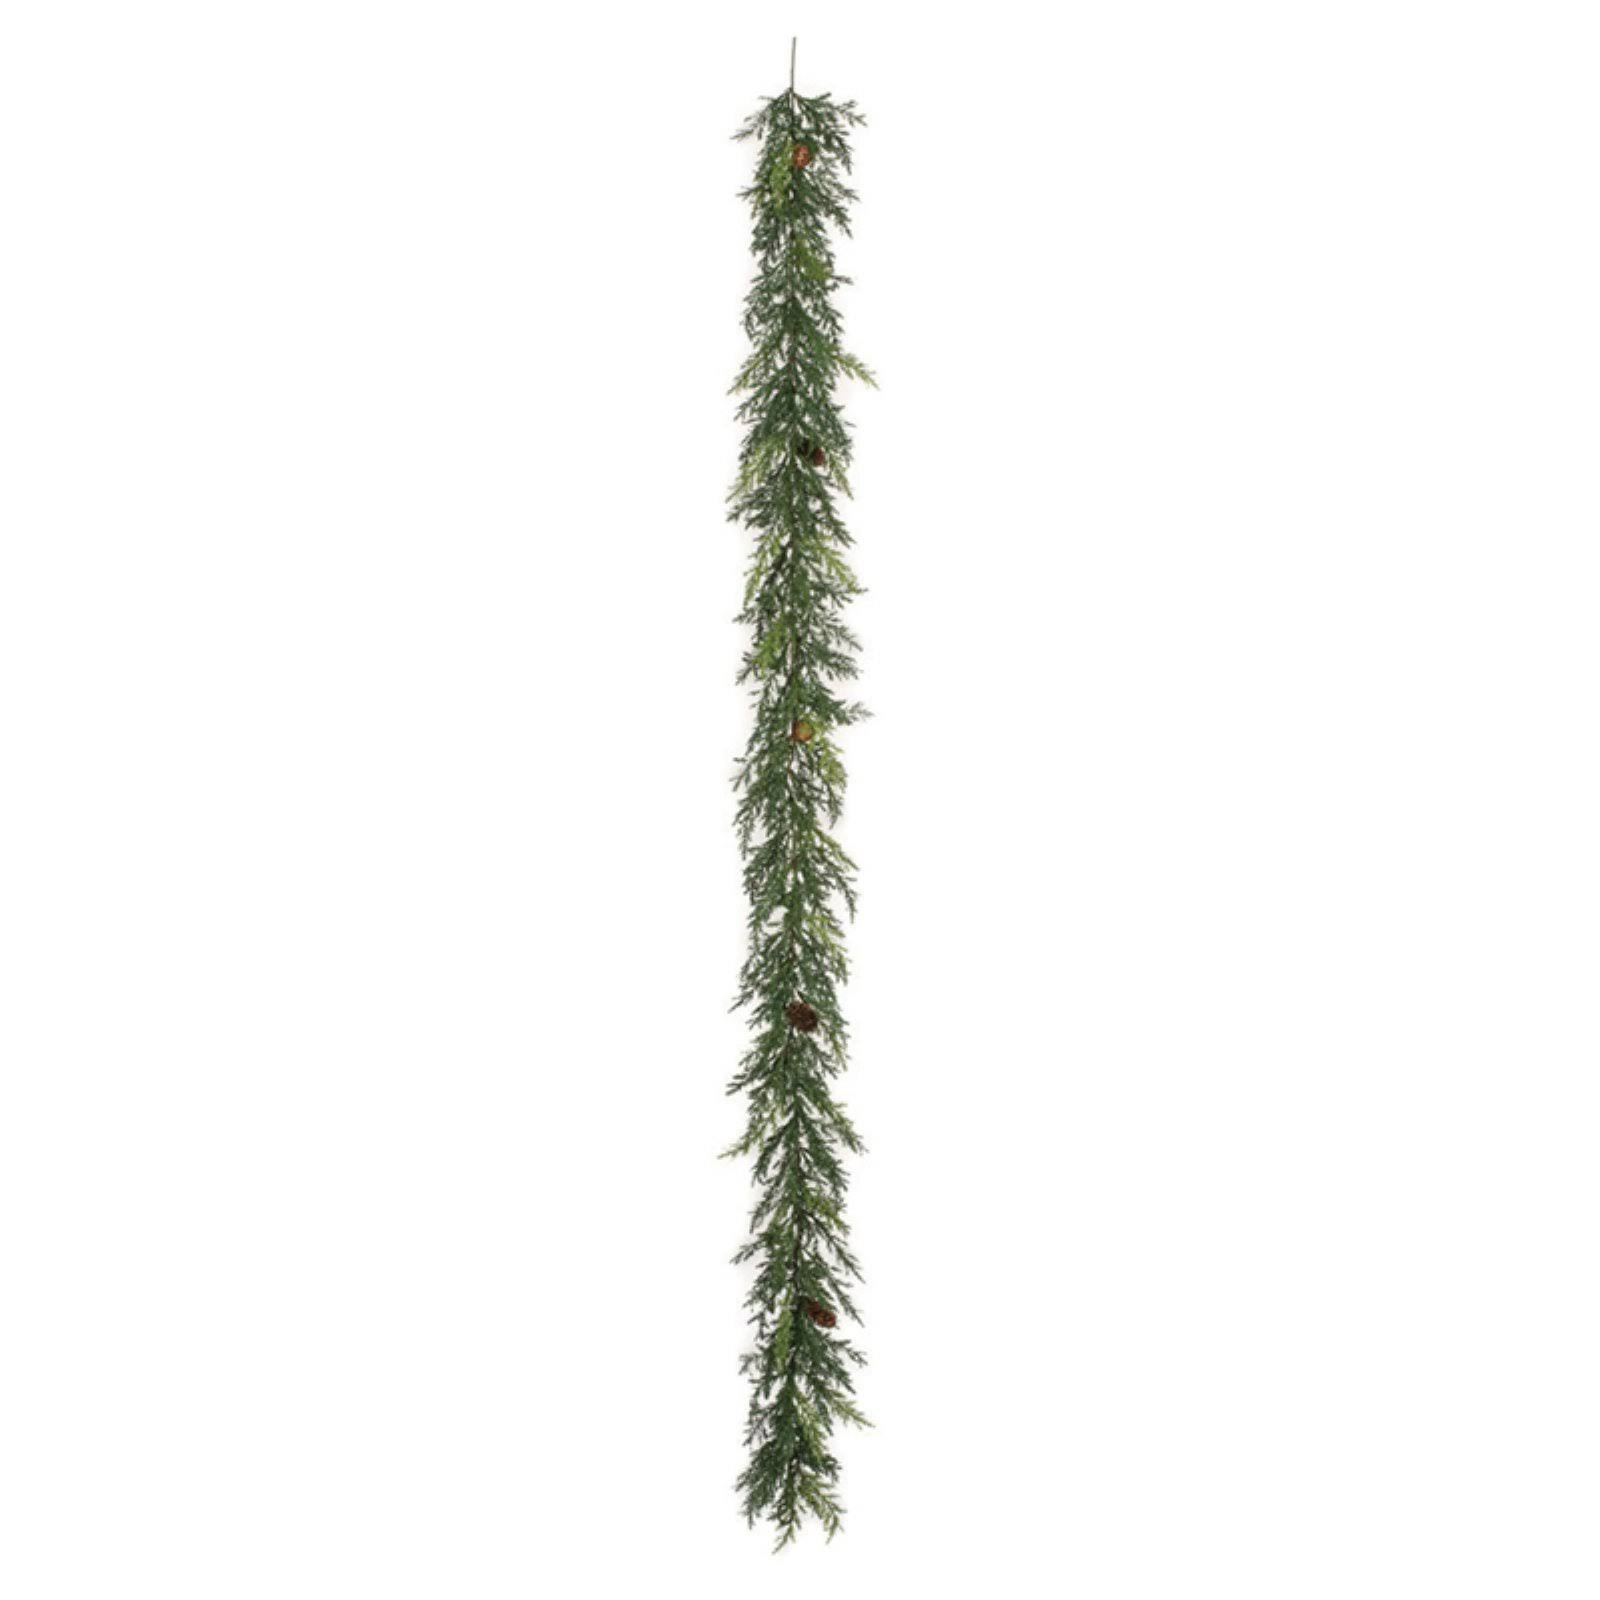 Sullivans 6 ft. Green Arborvitae Garland